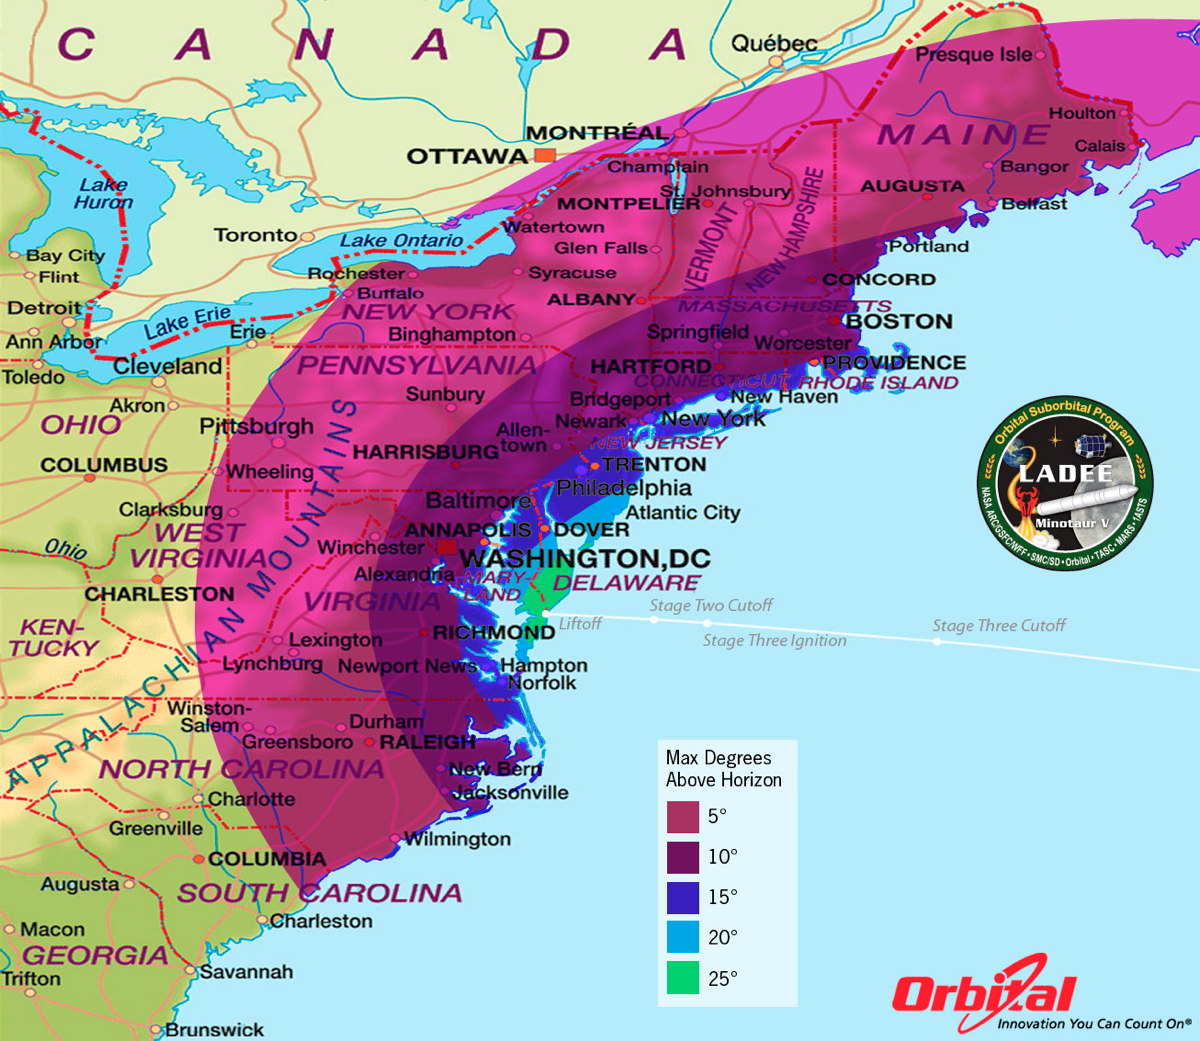 East Coast Beaches Map Tablesportsdirect - Beaches in the us map